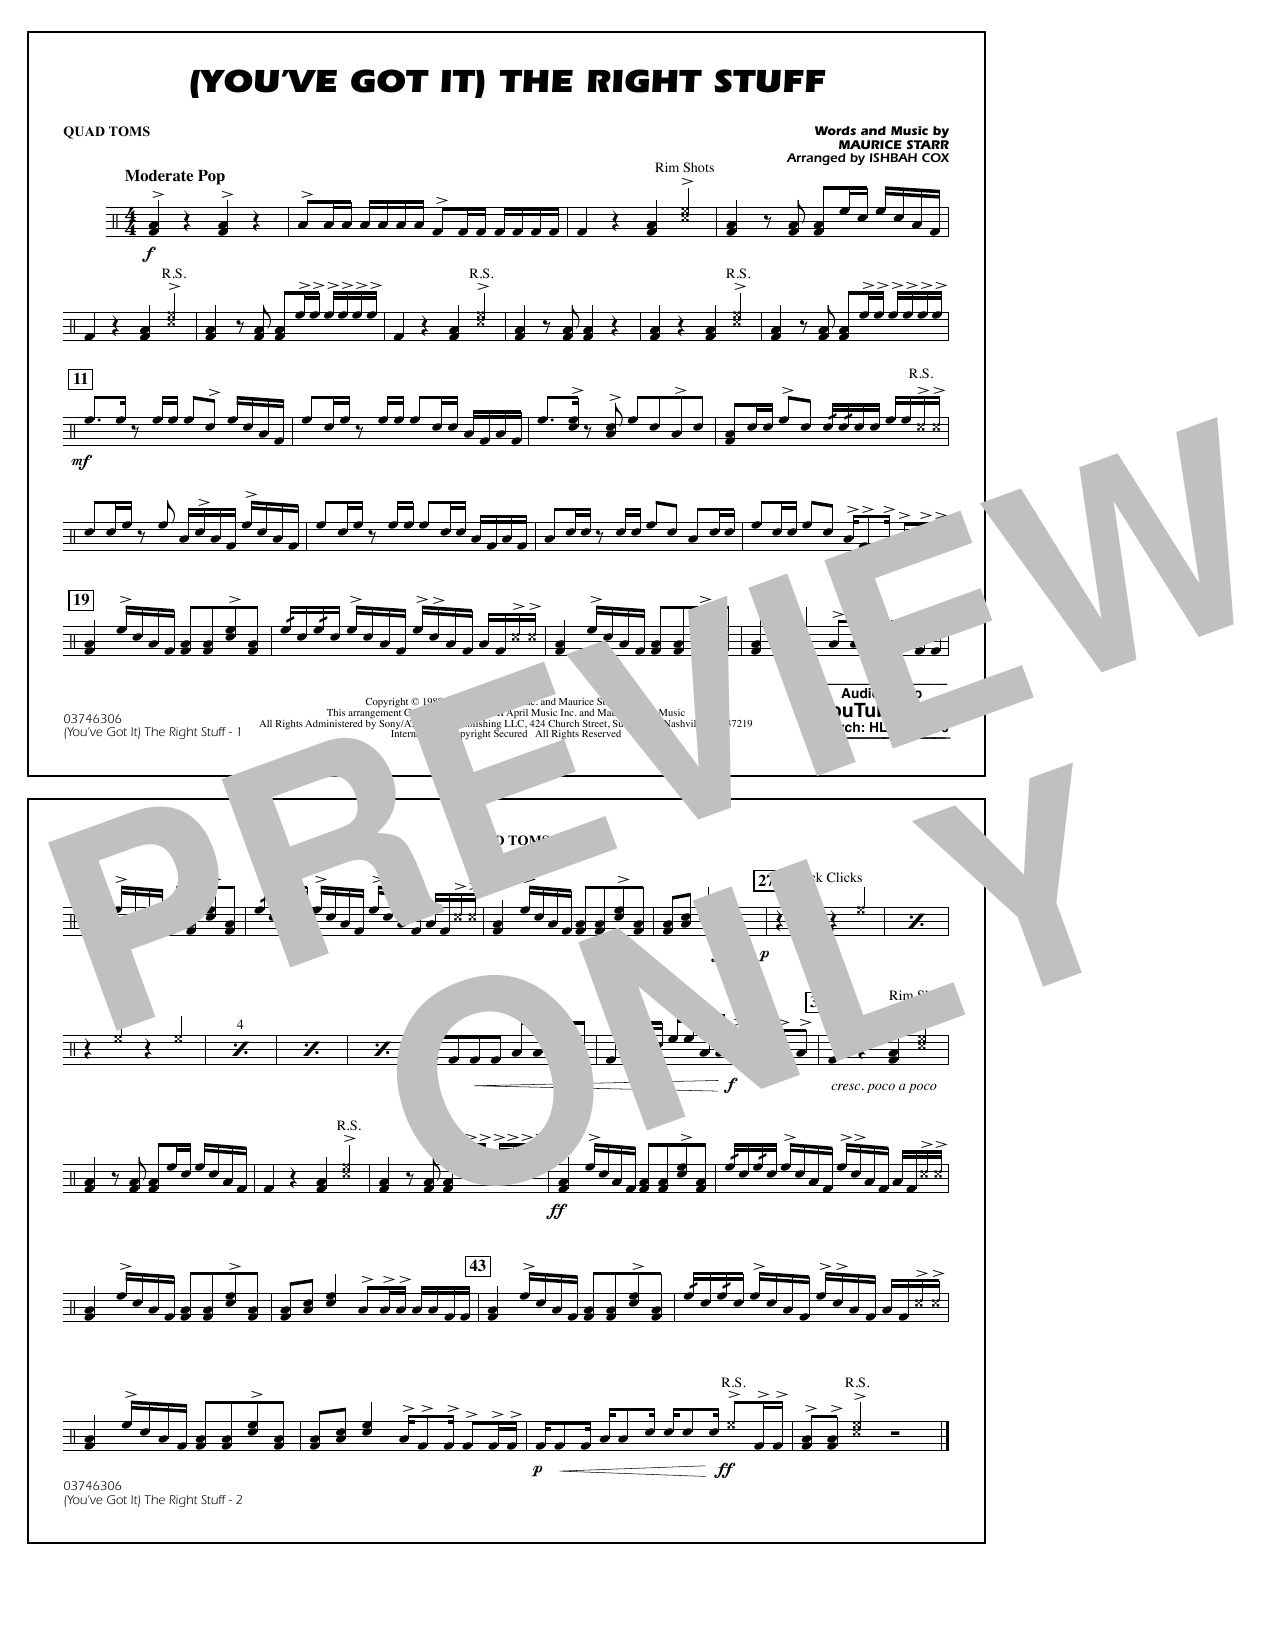 New Kids On The Block (You've Got It) The Right Stuff (arr. Ishbah Cox) - Quad Toms sheet music notes and chords